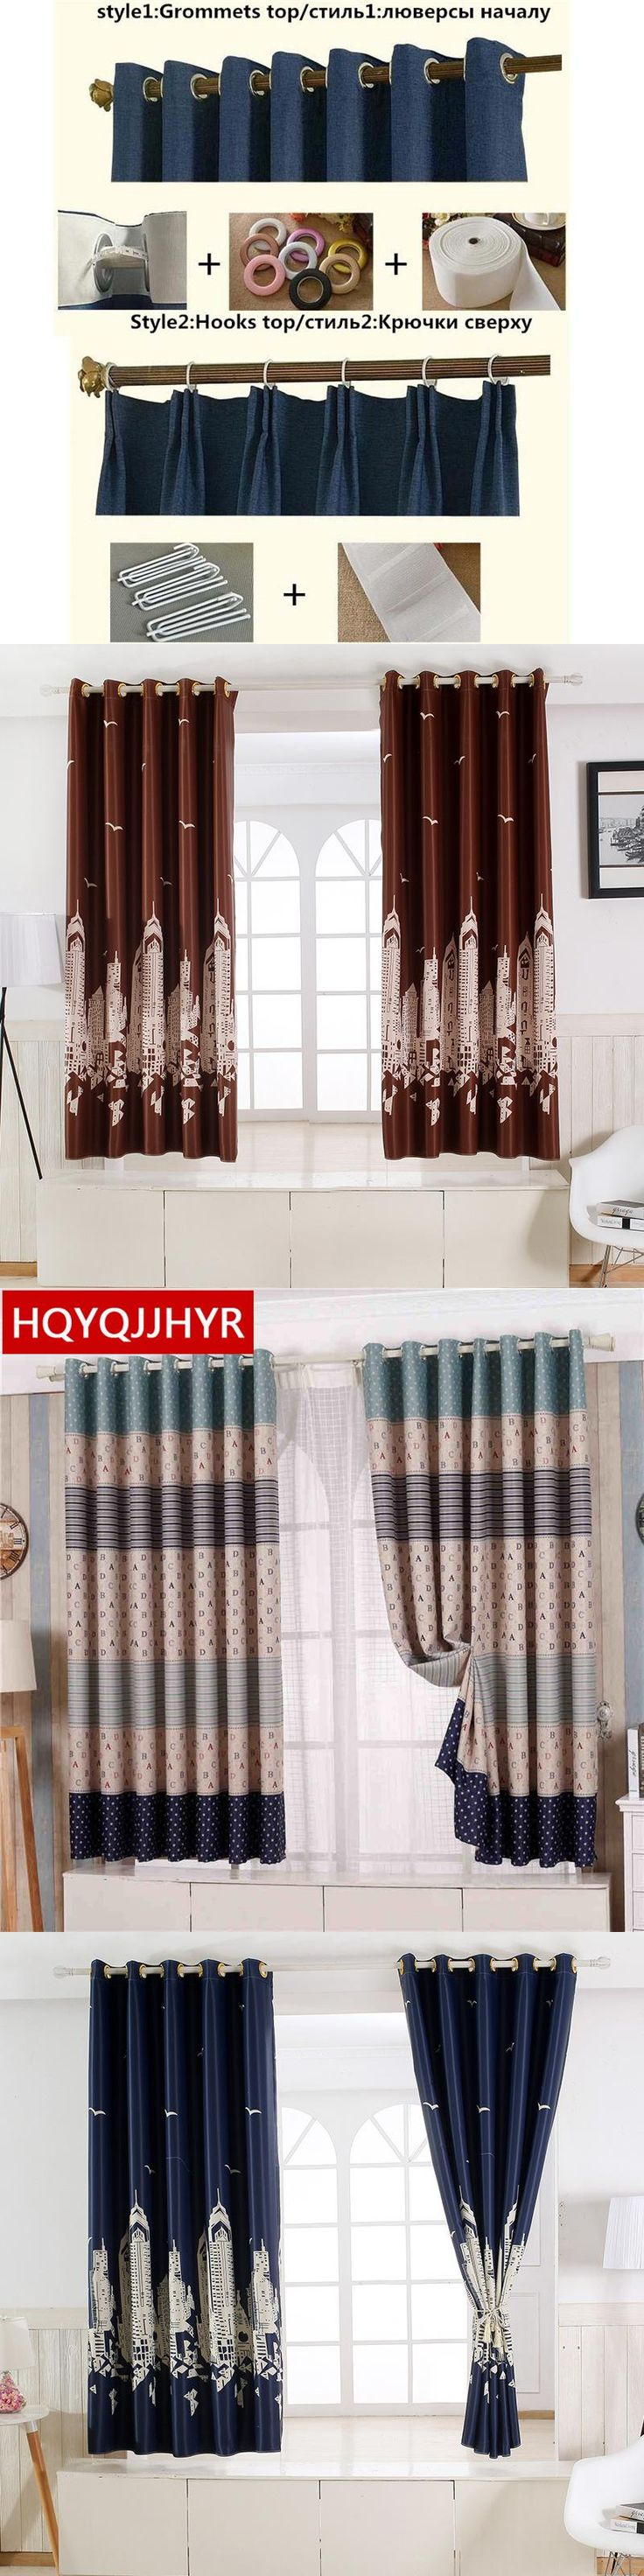 20 models of Modern full blackout curtains thick short for Living Room  Window curtain Bedroom kitchen